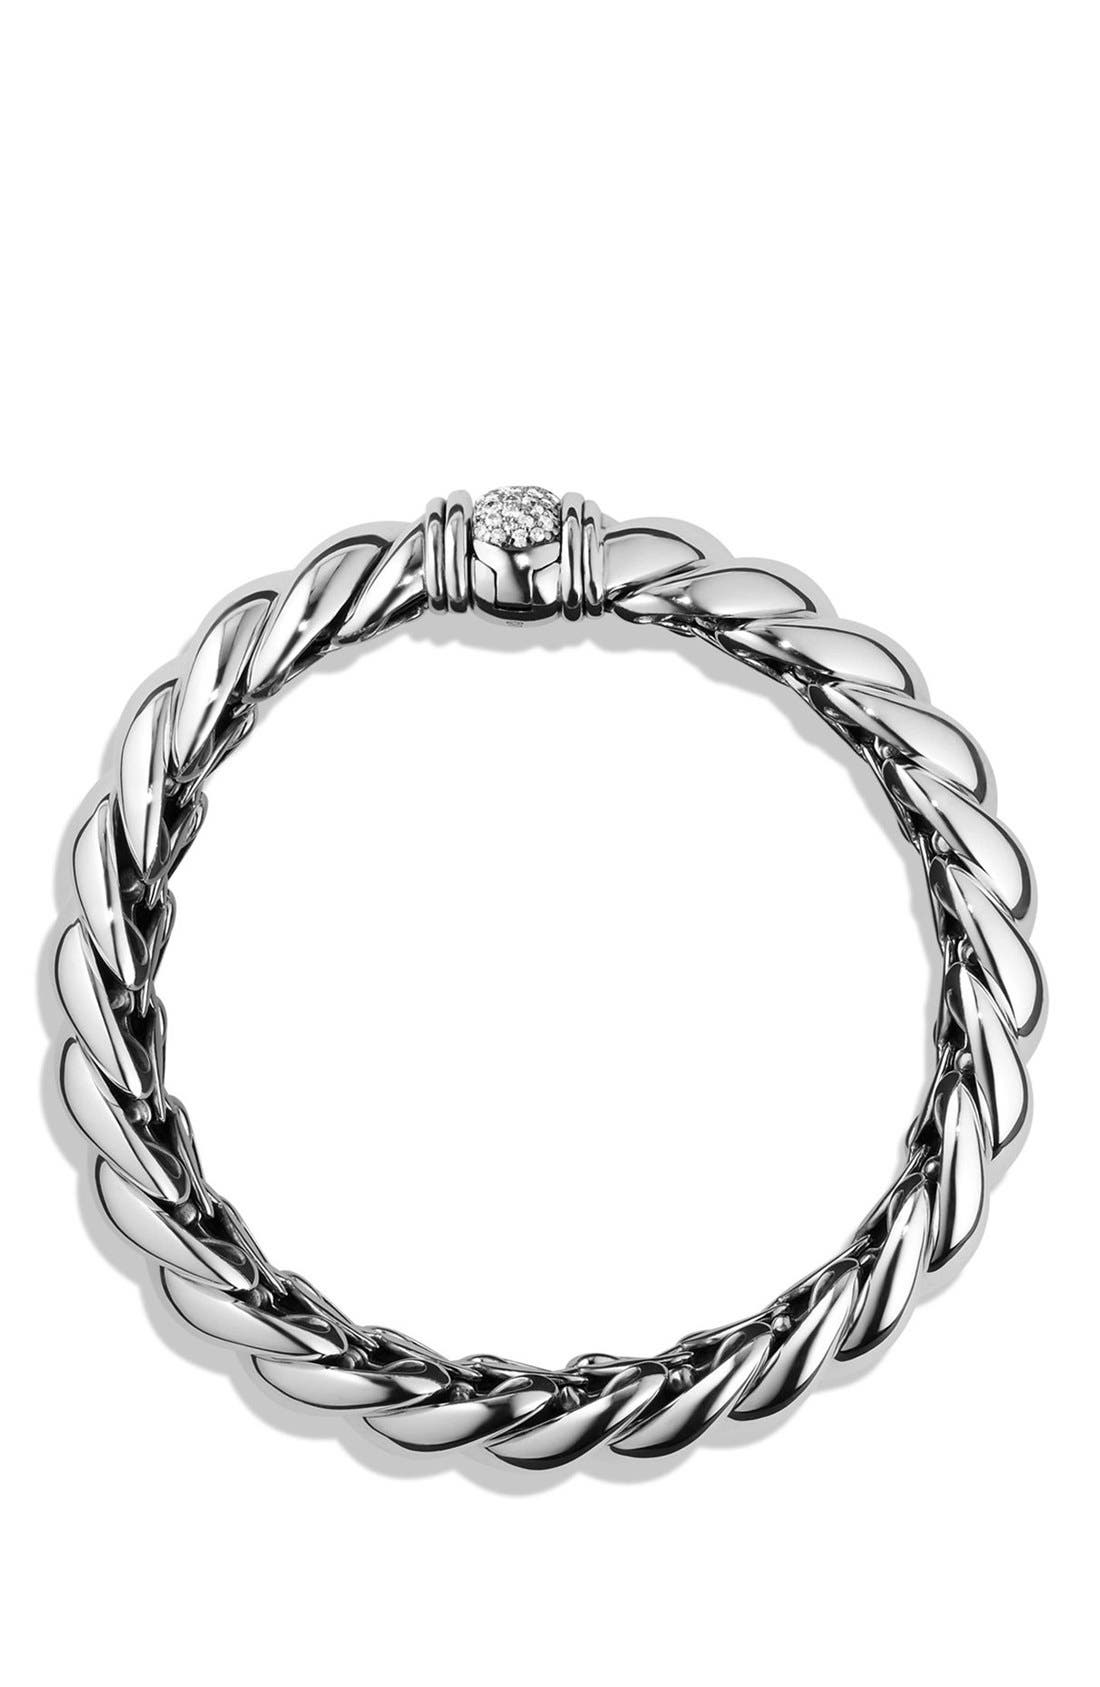 'Hampton' Bracelet with Diamonds,                             Main thumbnail 1, color,                             041